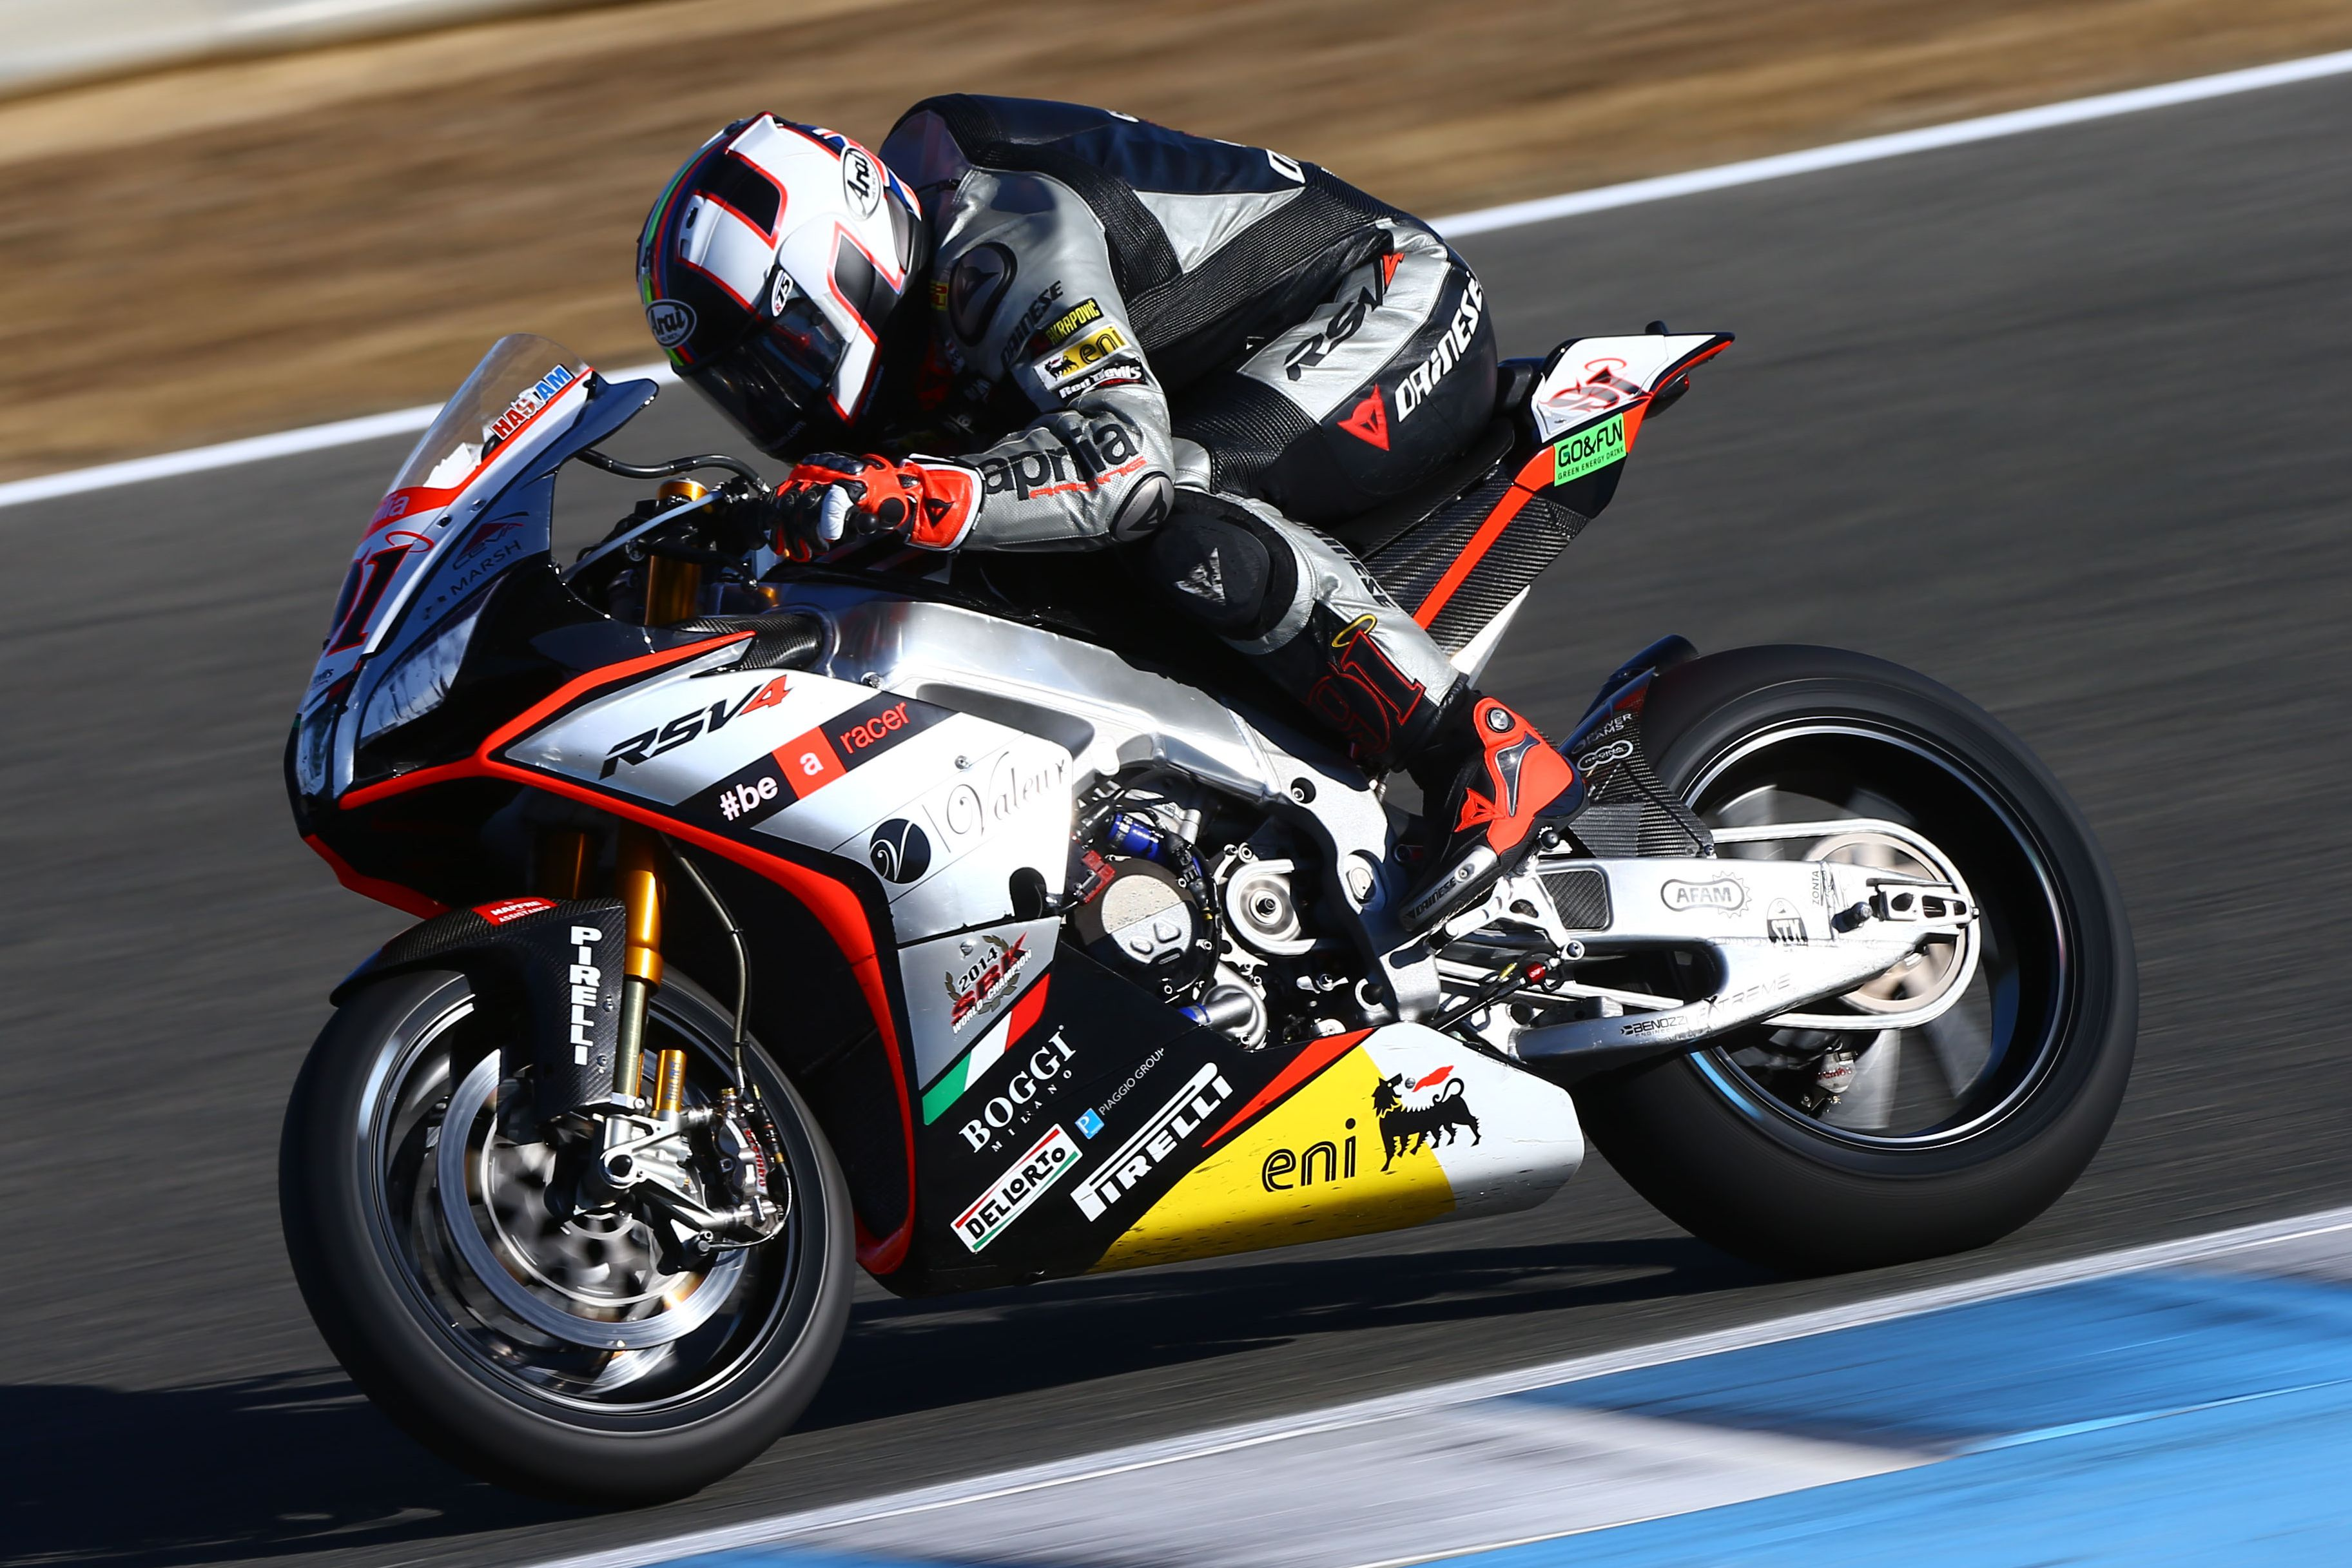 Top 10 race bikes of 2015 | Visordown Race Bike Photos